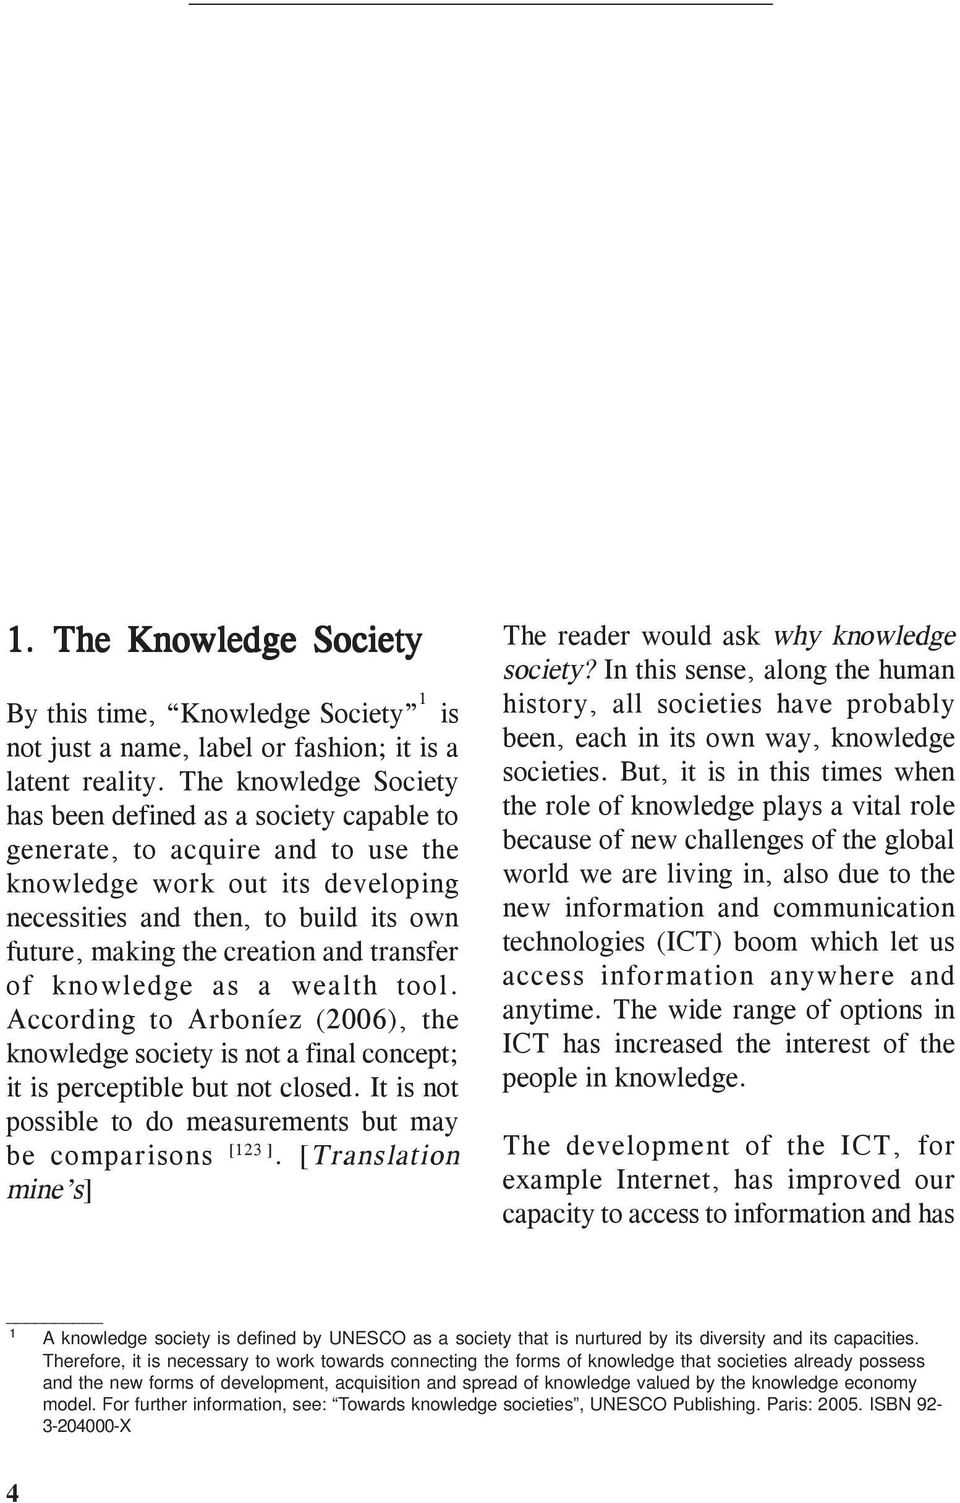 and transfer of knowledge as a wealth tool. According to Arboníez (2006), the knowledge society is not a final concept; it is perceptible but not closed.